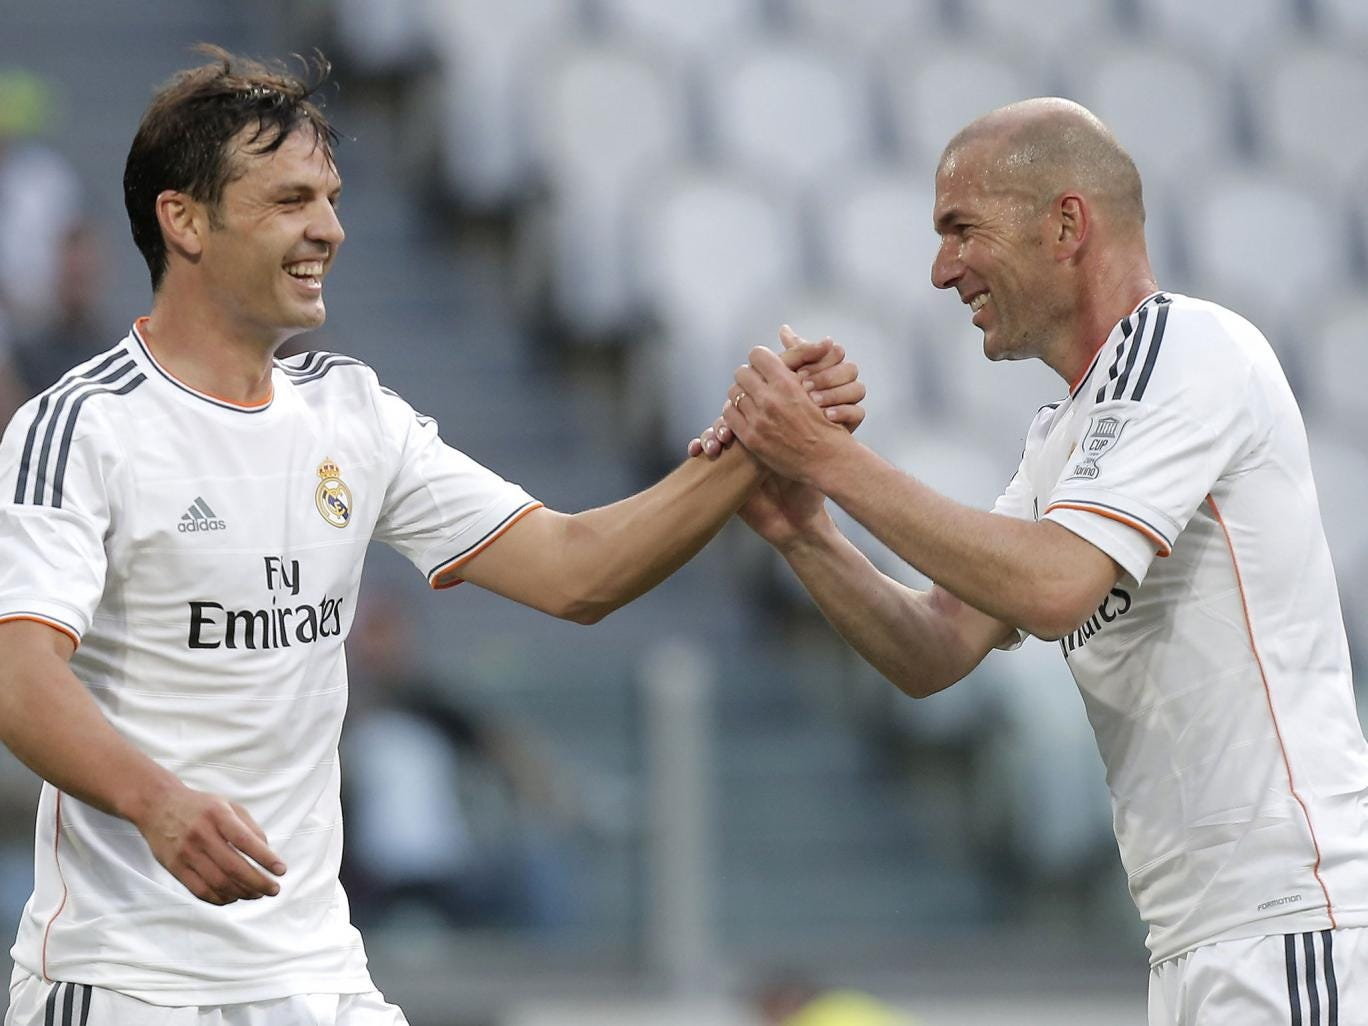 Real Madrid's forward Sanchez Fernando Morientes (L) celebrates with his teammate Zinedine Zidane after scoring during the Unesco Cup football match Juventus Legends vs Real Madrid Leyendas